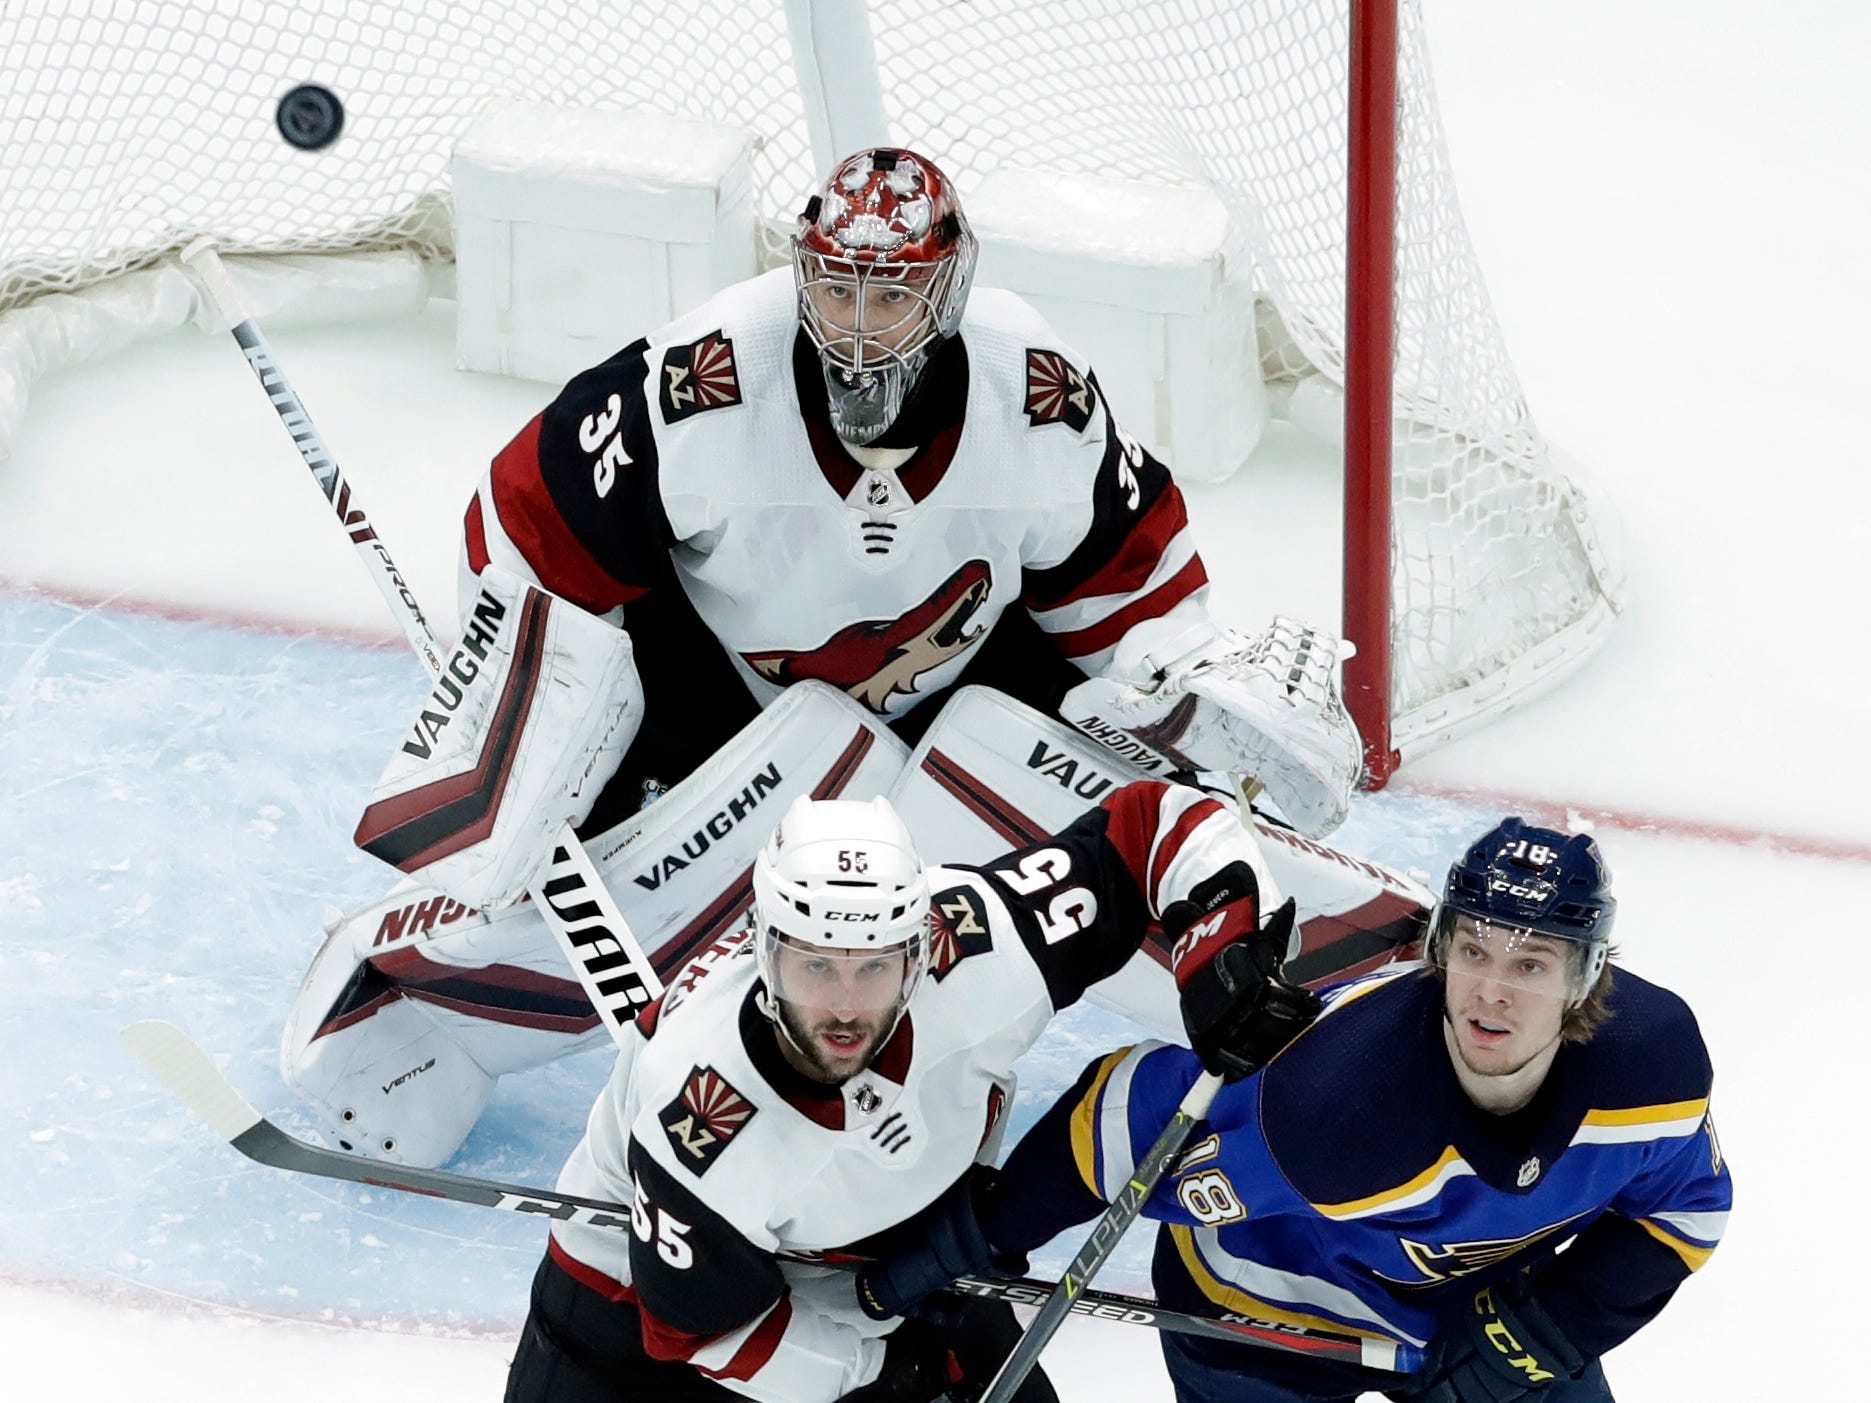 Arizona Coyotes goaltender Darcy Kuemper (35), Jason Demers (55) and St. Louis Blues' Robert Thomas (18) watch as the puck flies in the air during the first period of an NHL hockey game, Tuesday, March 12, 2019, in St. Louis.